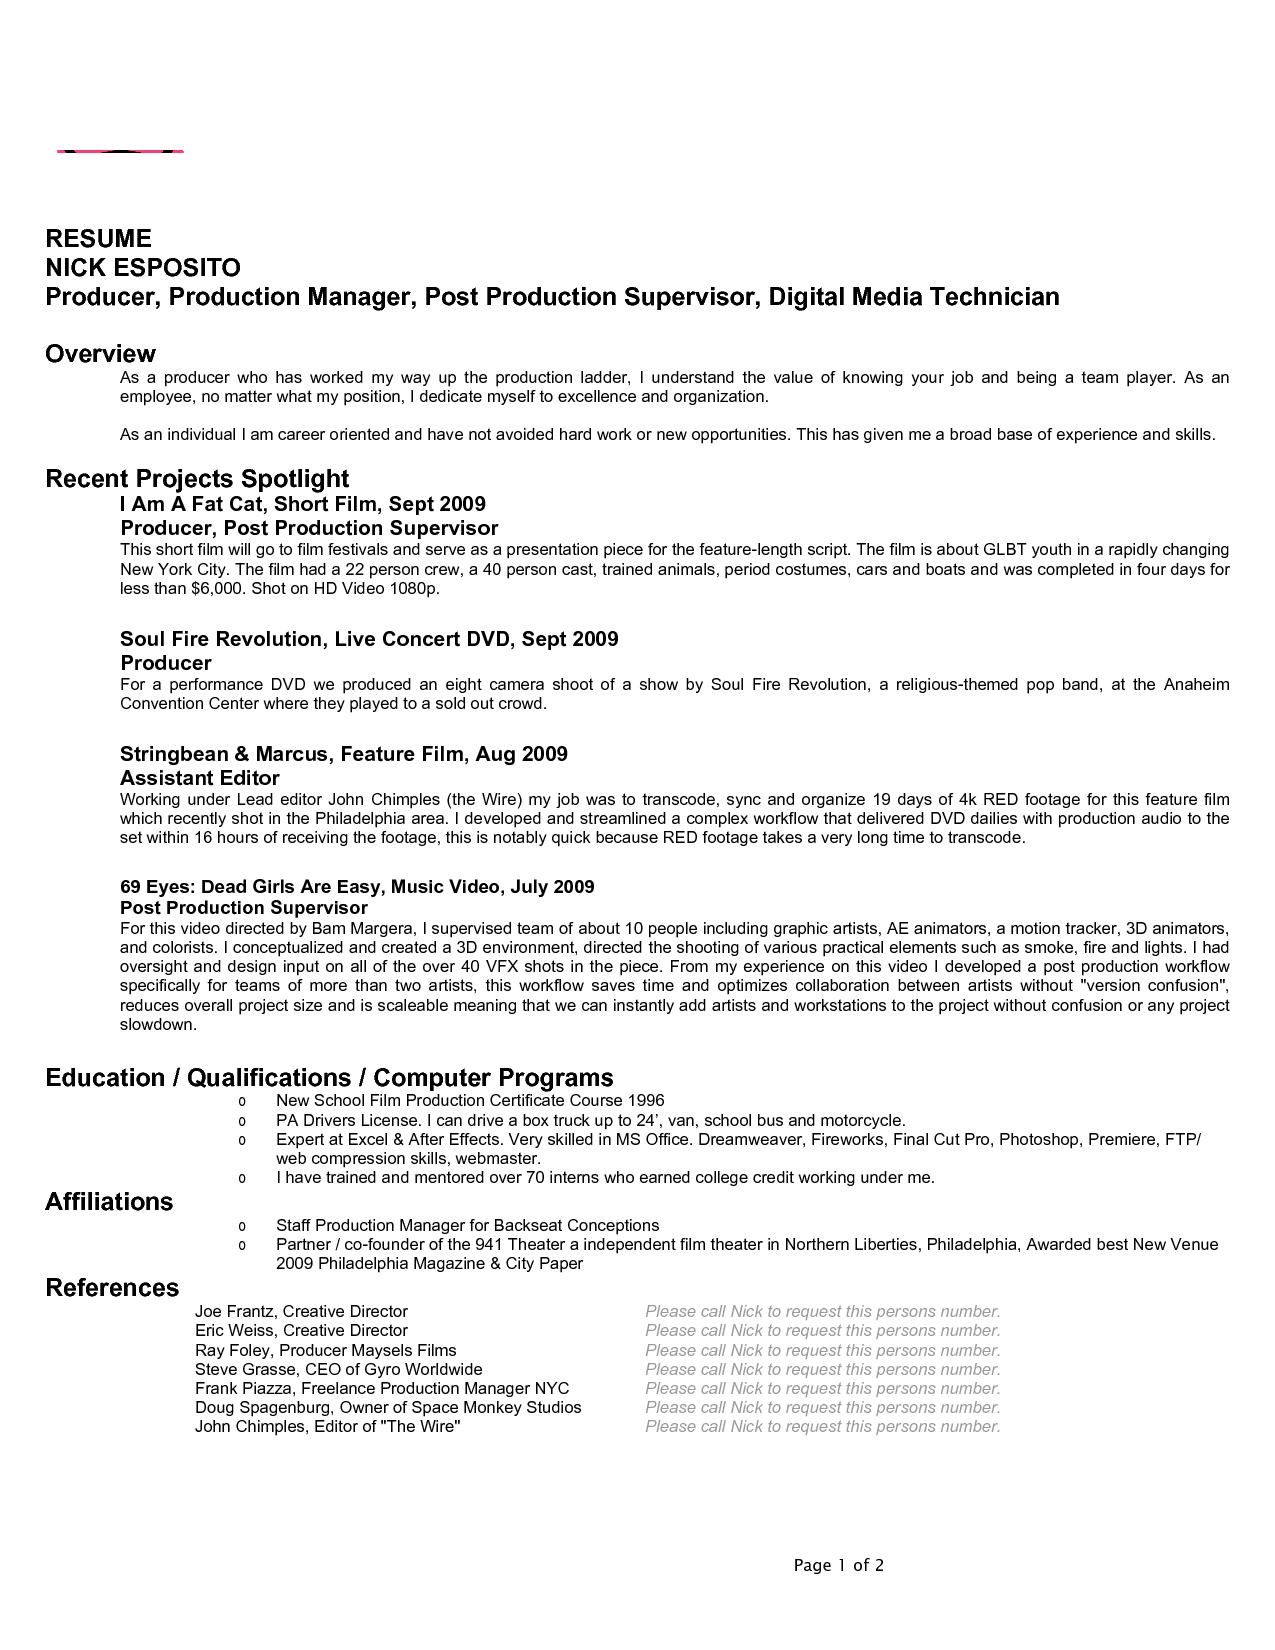 Resume Templates Tamu Mesmerizing Film Producer Resume  Google Search  Bragging Rights  Resumes